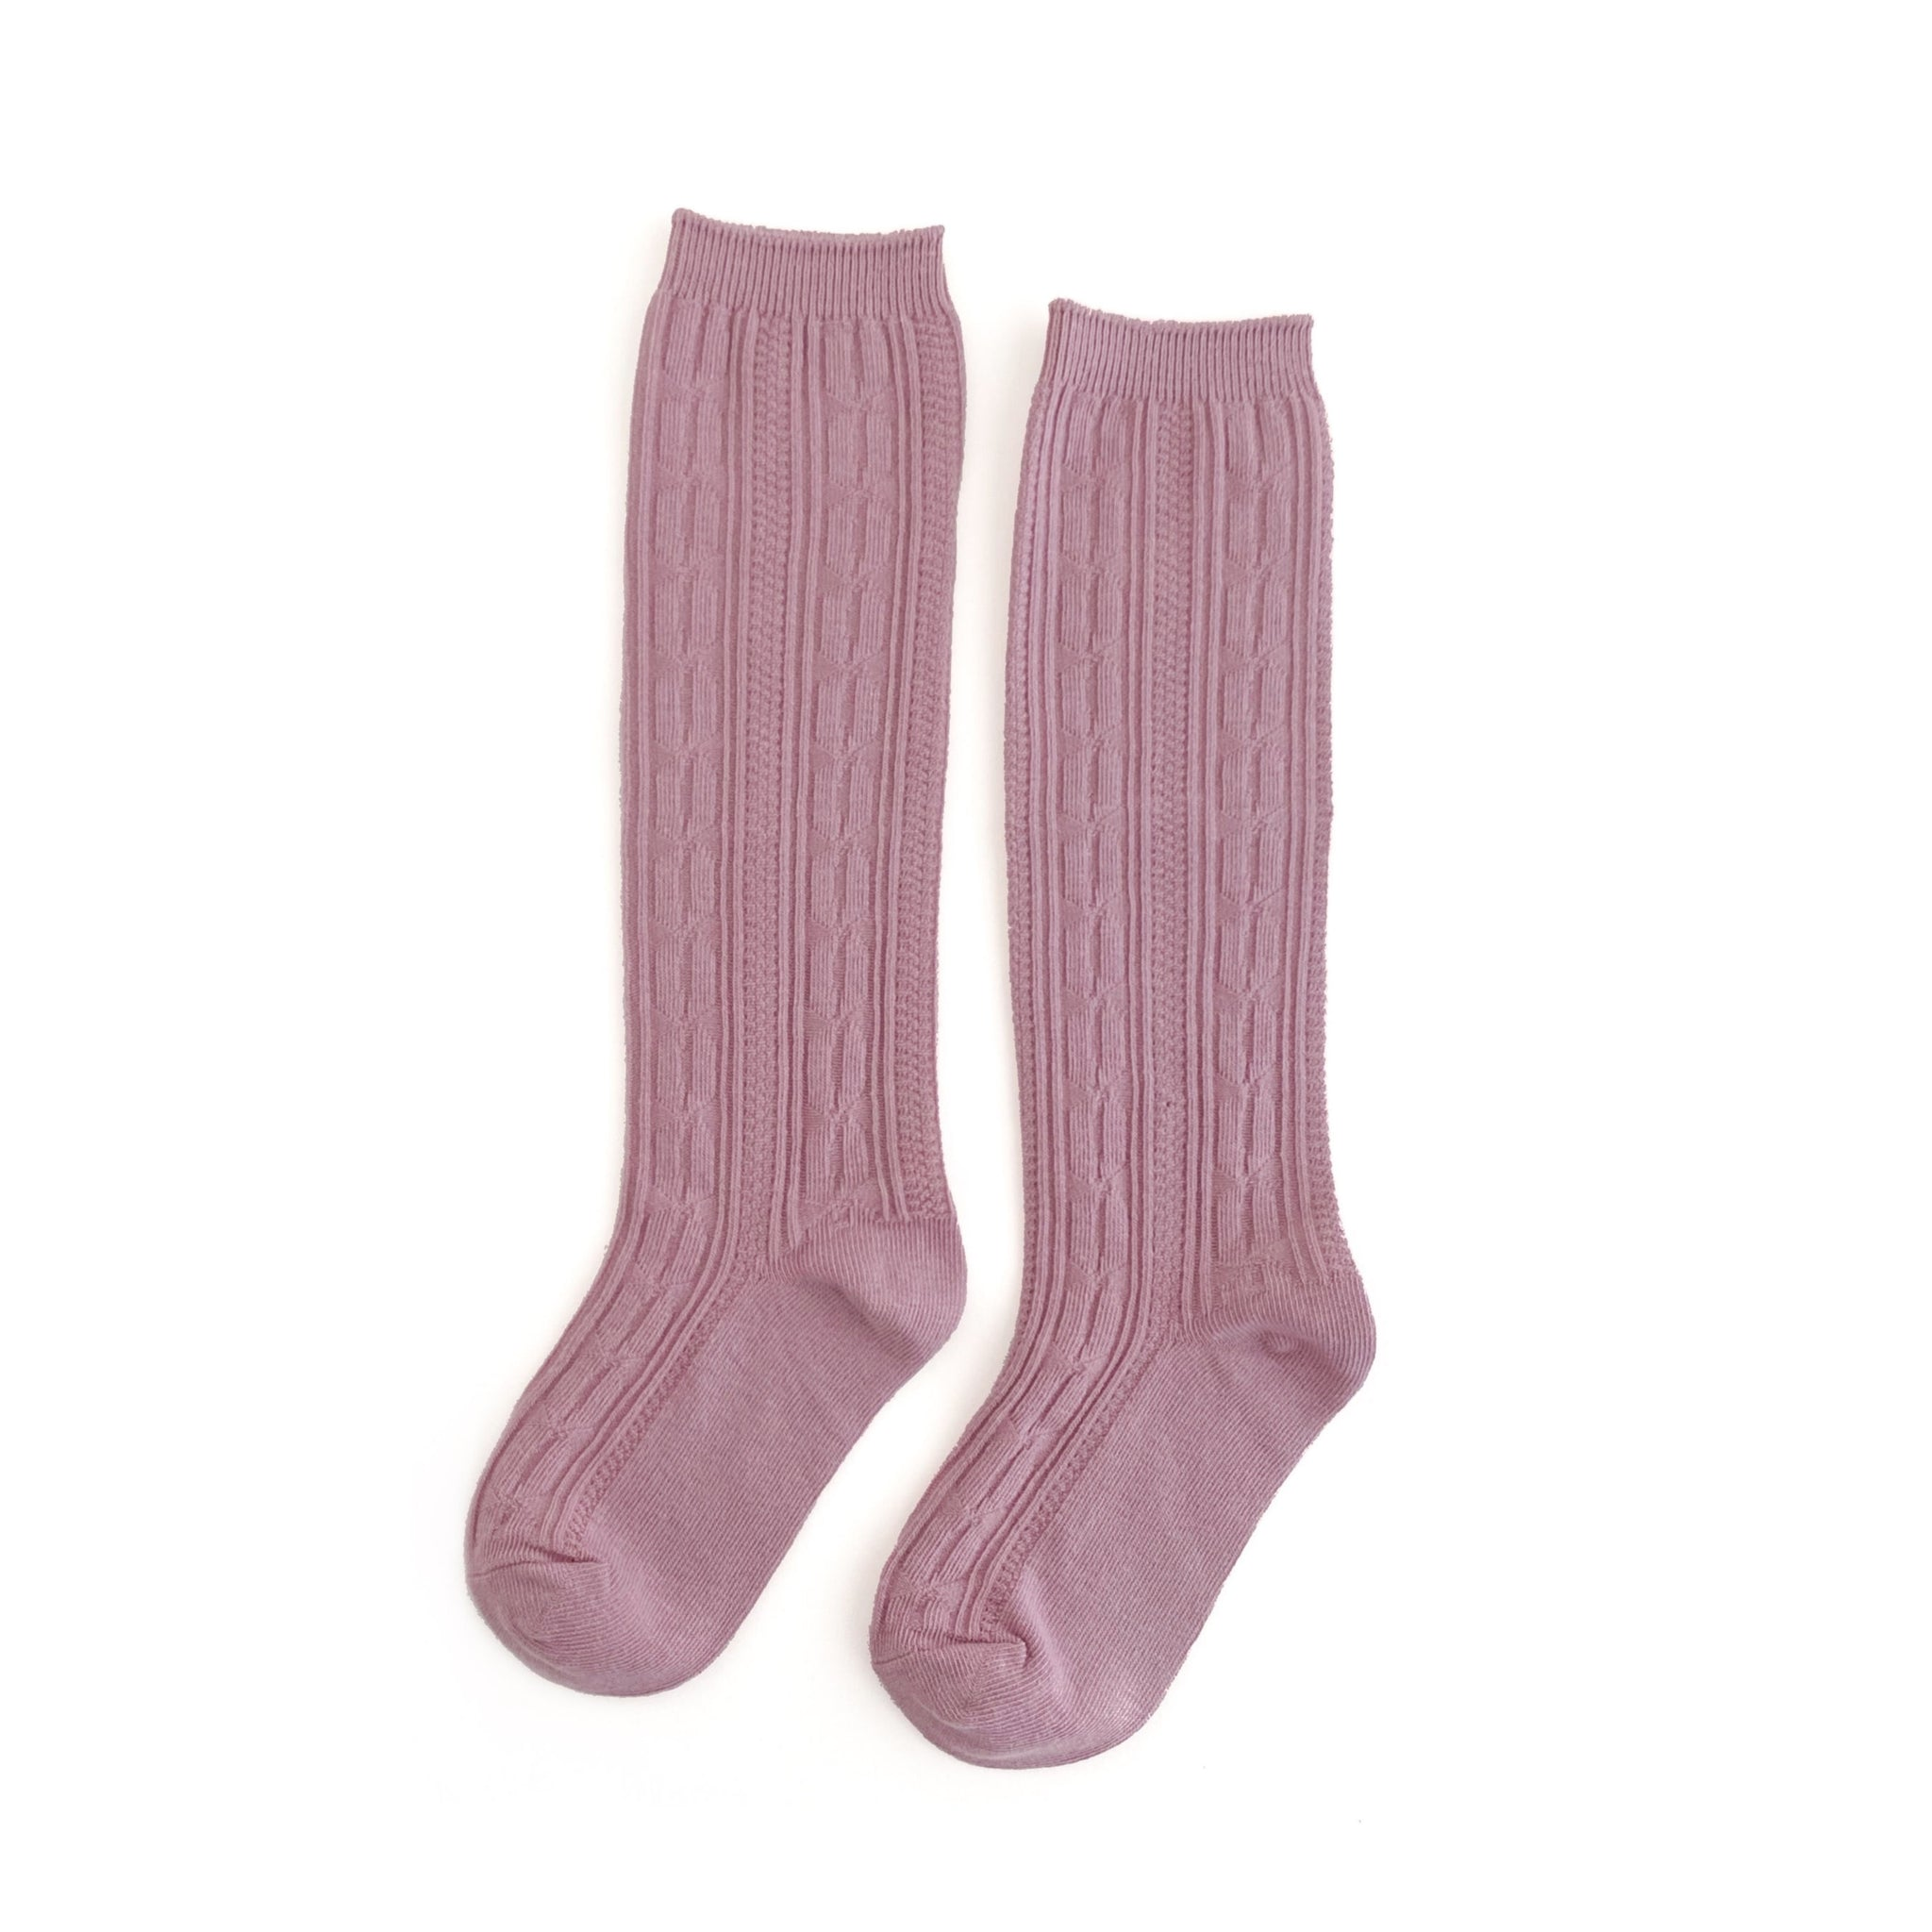 Dusty Rose Cable Knit Knee Highs